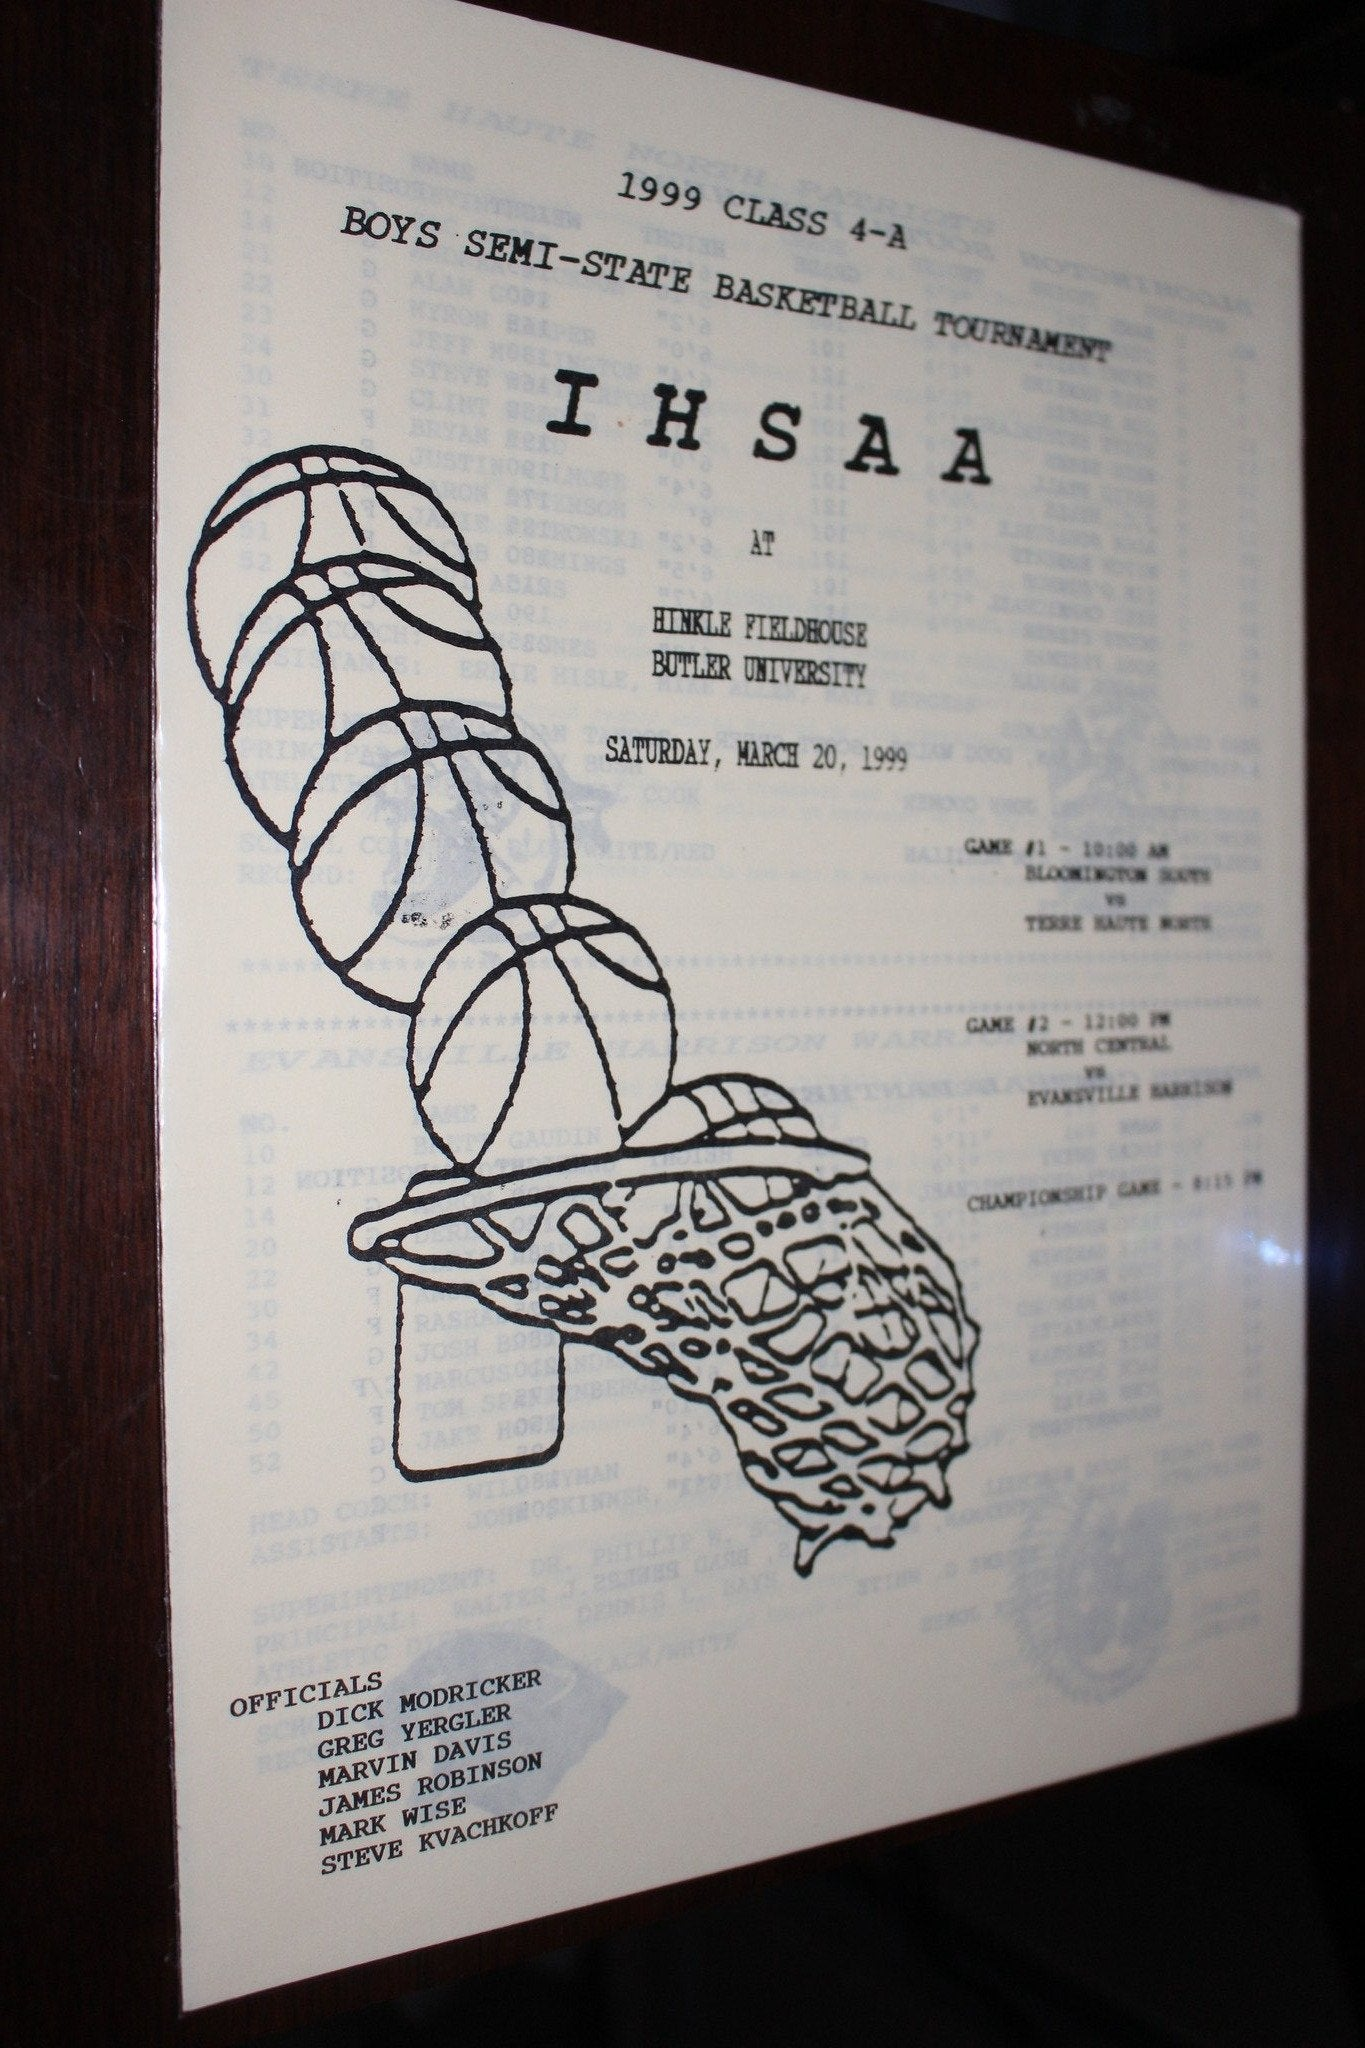 1999 Indiana High School Hinkle Fieldhouse Semi State Basketball Program - Vintage Indy Sports